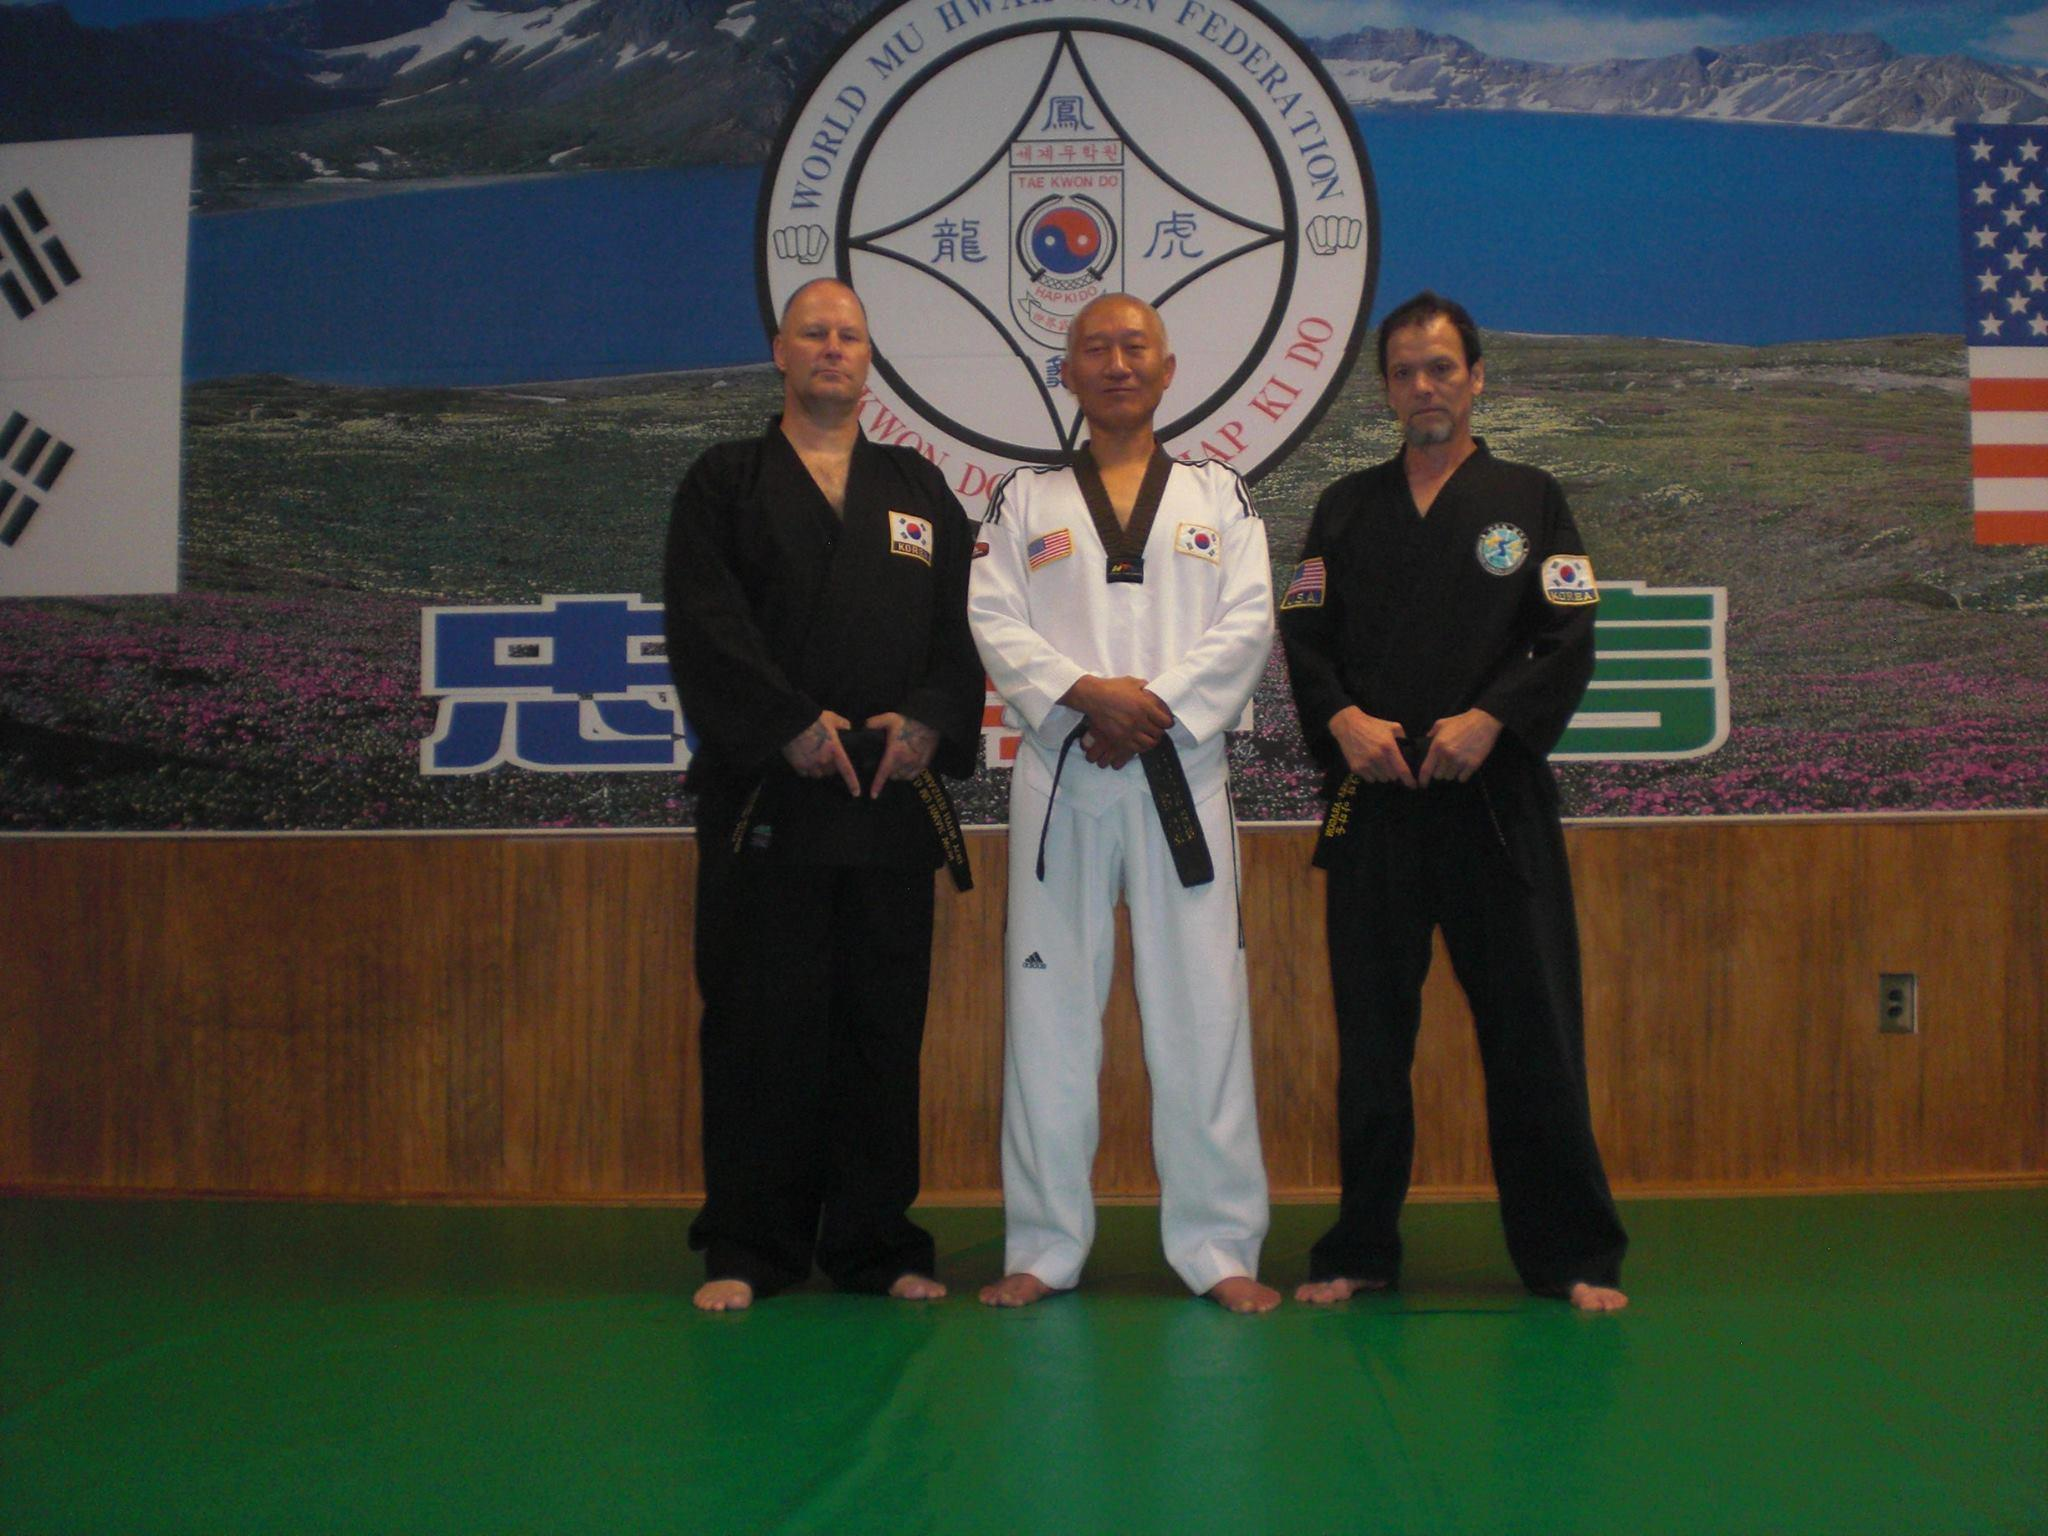 Decatur Martial Arts Academy image 11